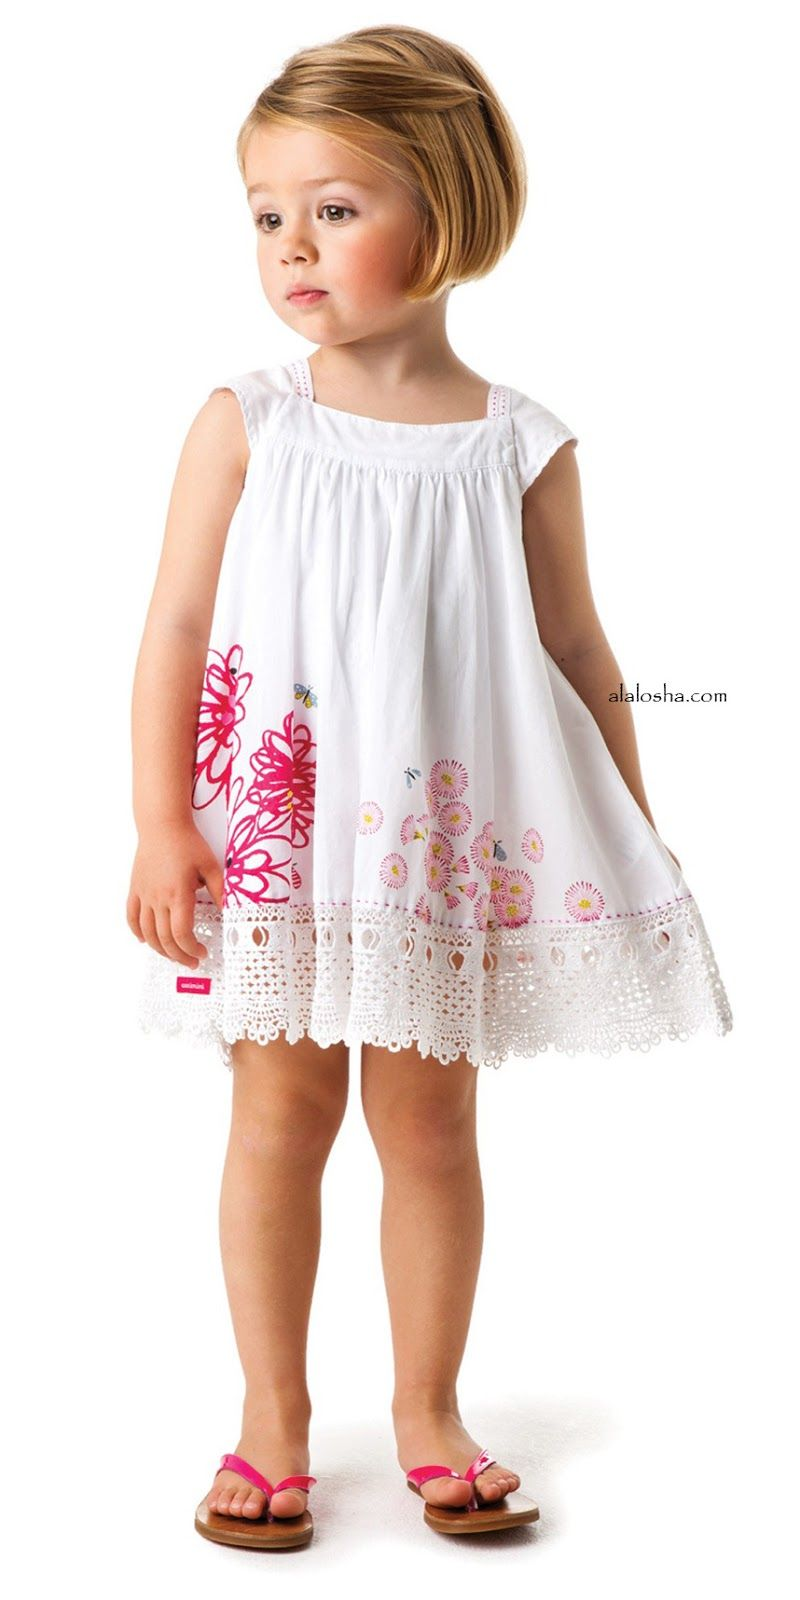 c8e545883ec6 ALALOSHA  VOGUE ENFANTS  Vibrant colors and prints come to life in ...